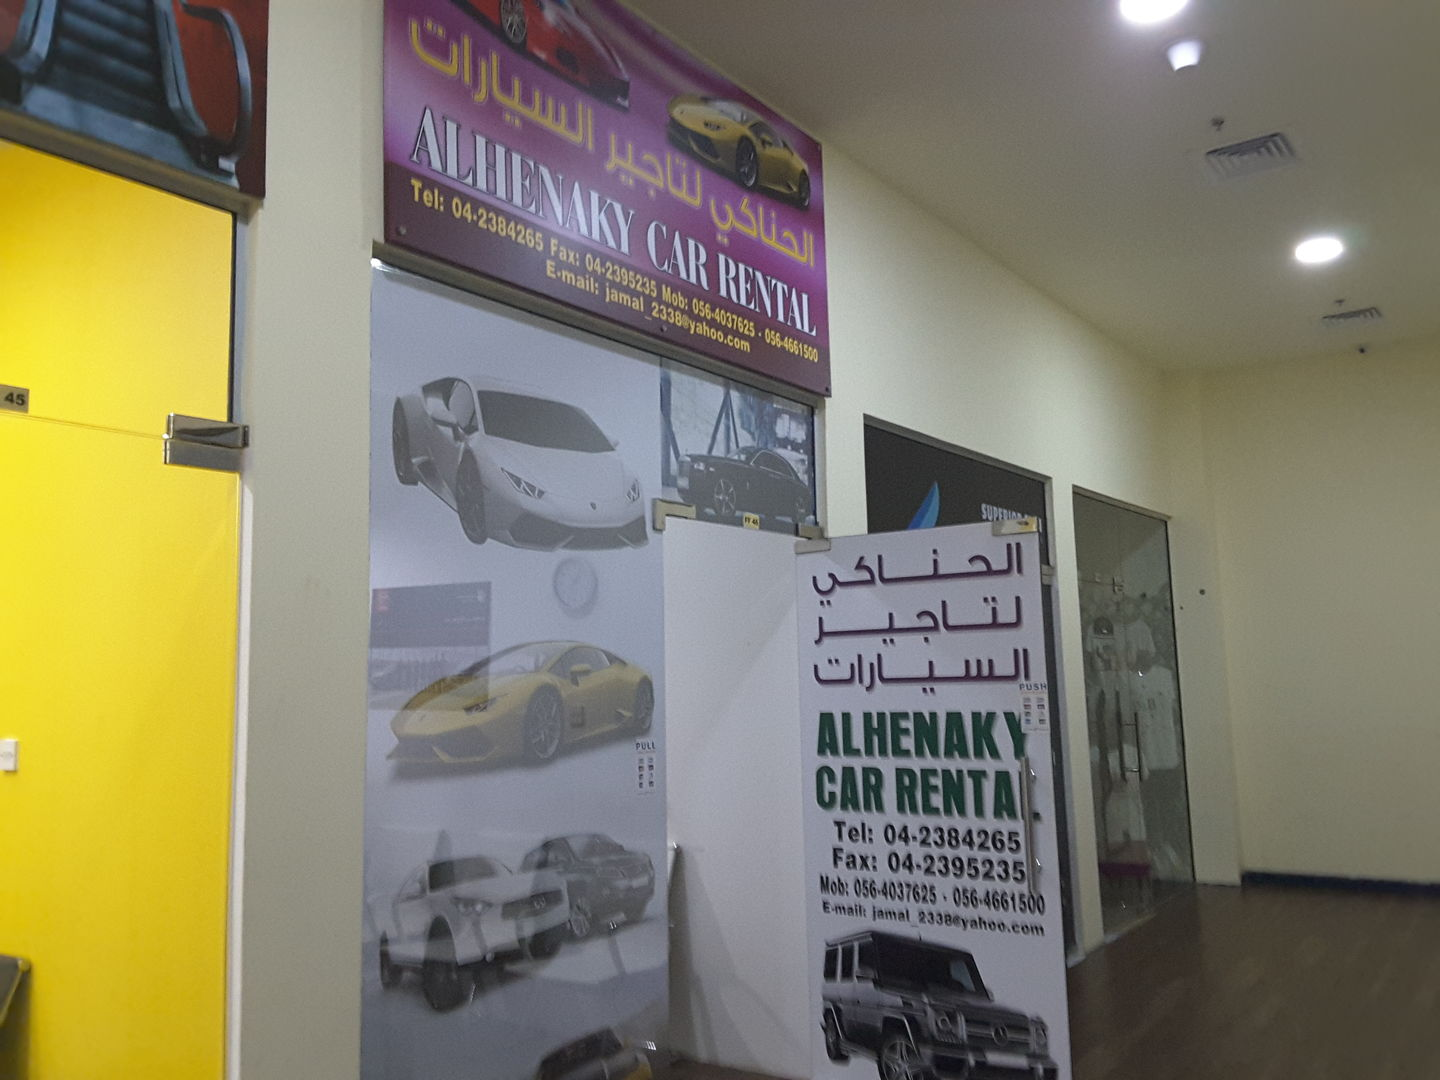 HiDubai-business-mohammed-alhenaky-rental-car-transport-vehicle-services-car-rental-services-port-saeed-dubai-2